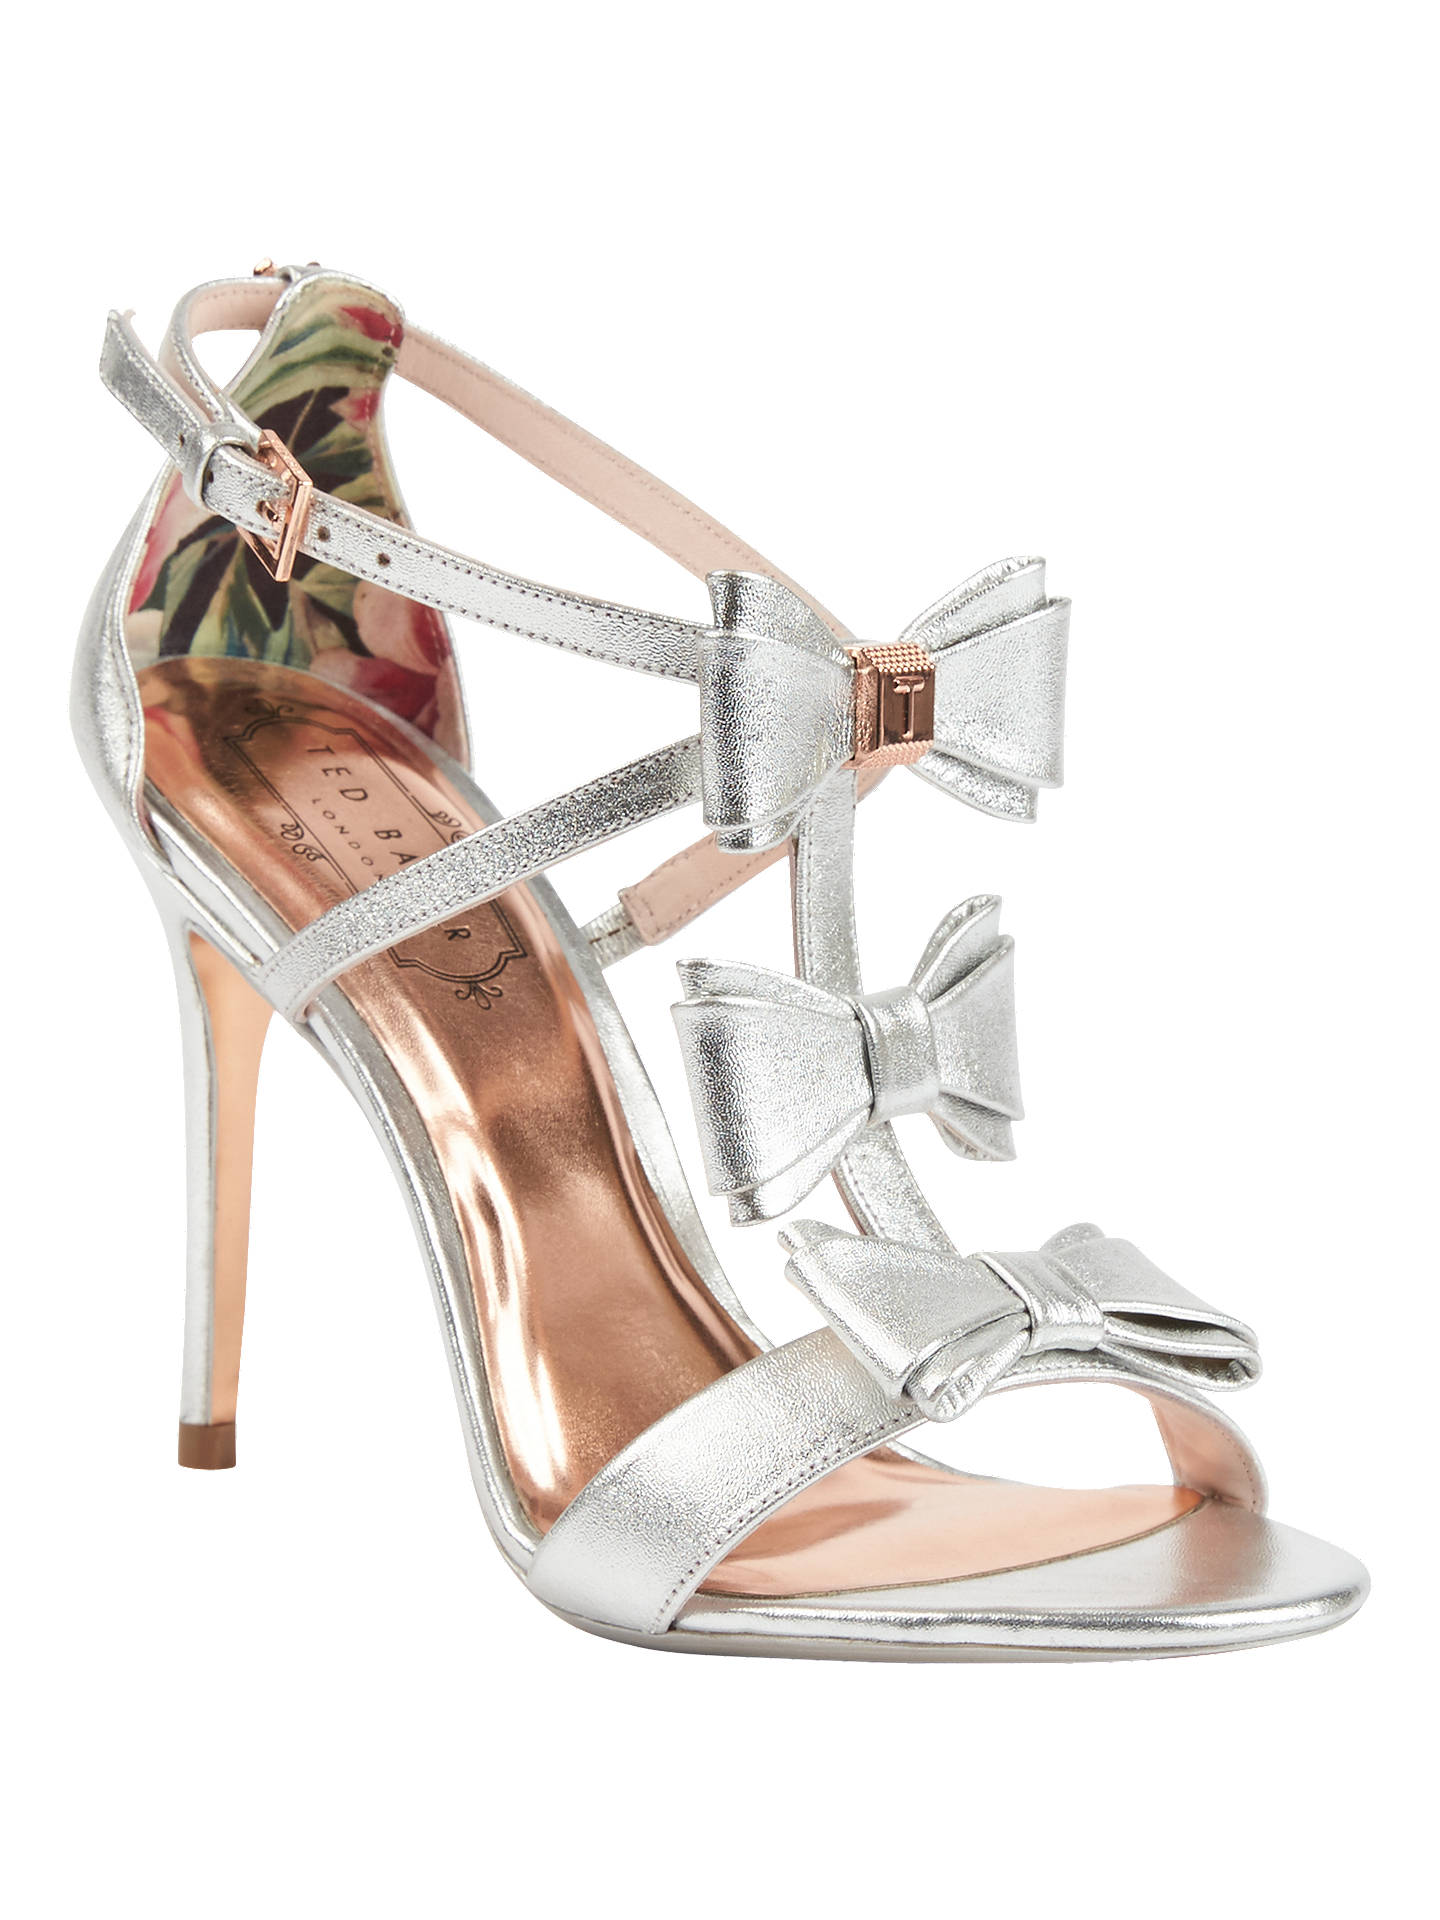 a500dd9e787a Buy Ted Baker Tie the Knot Appolini Bow Stiletto Sandals